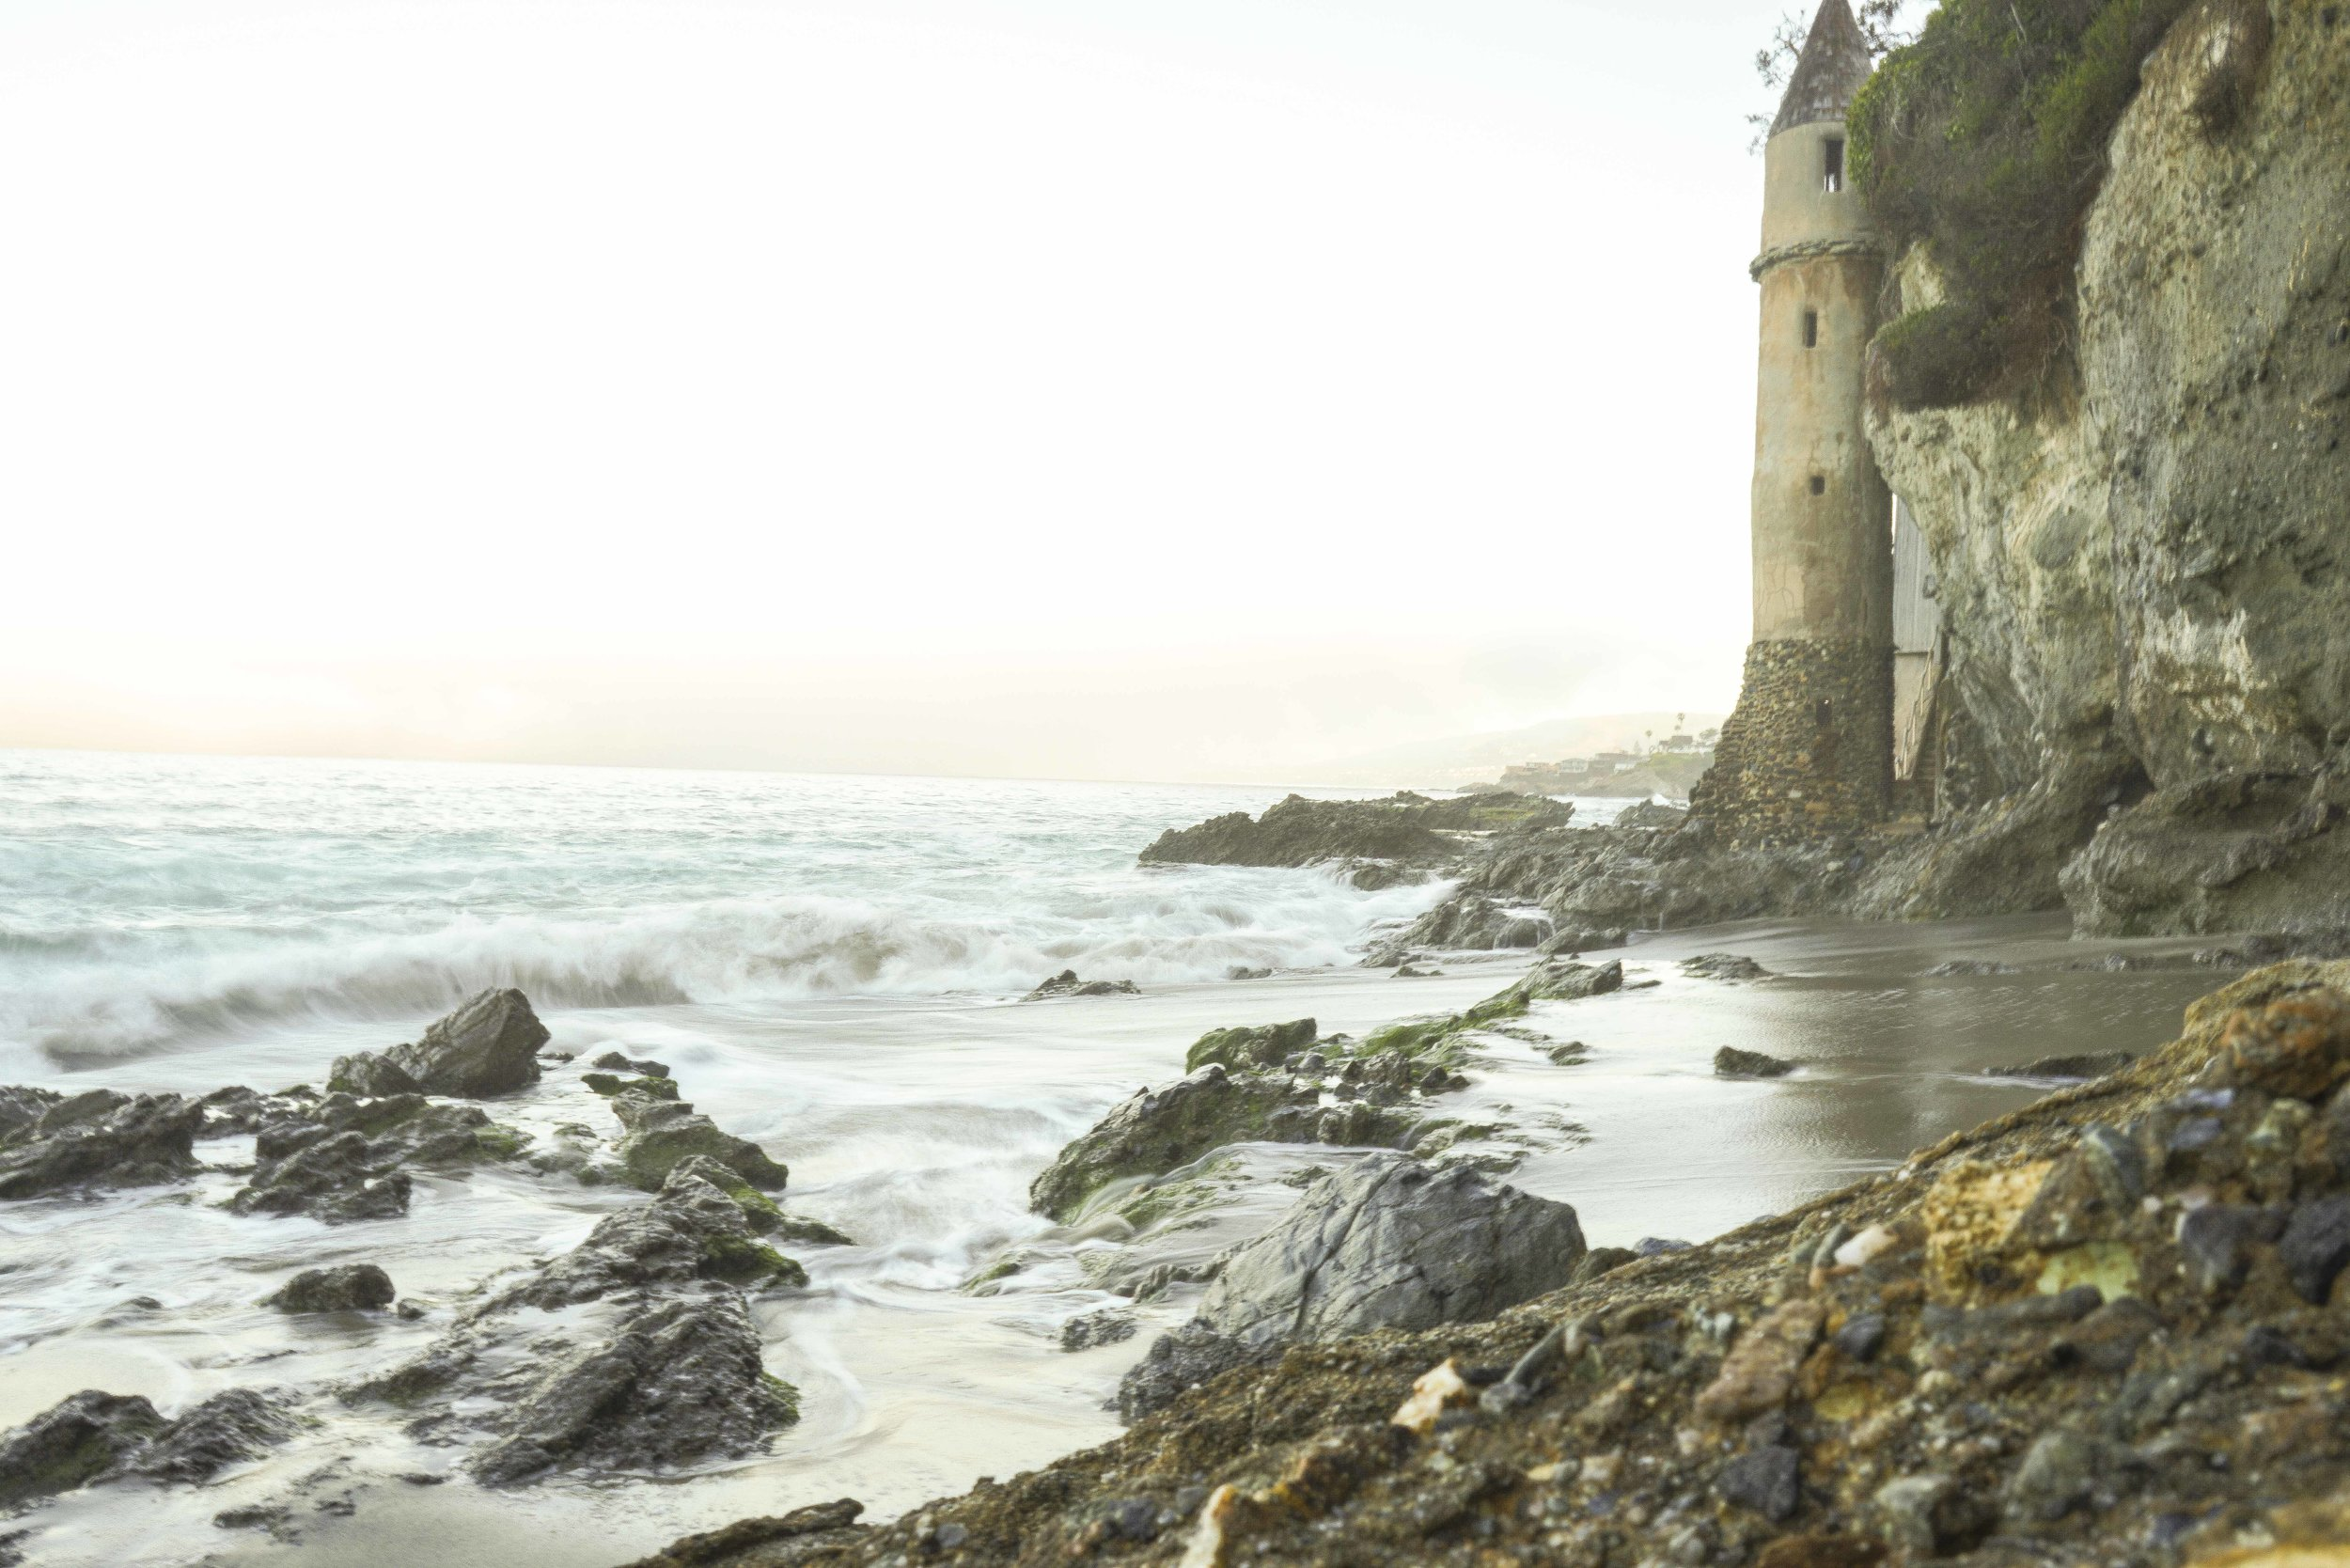 A Guide to Southern California's Beaches | Los Angeles | Orange County | California | USA | What beaches to go to